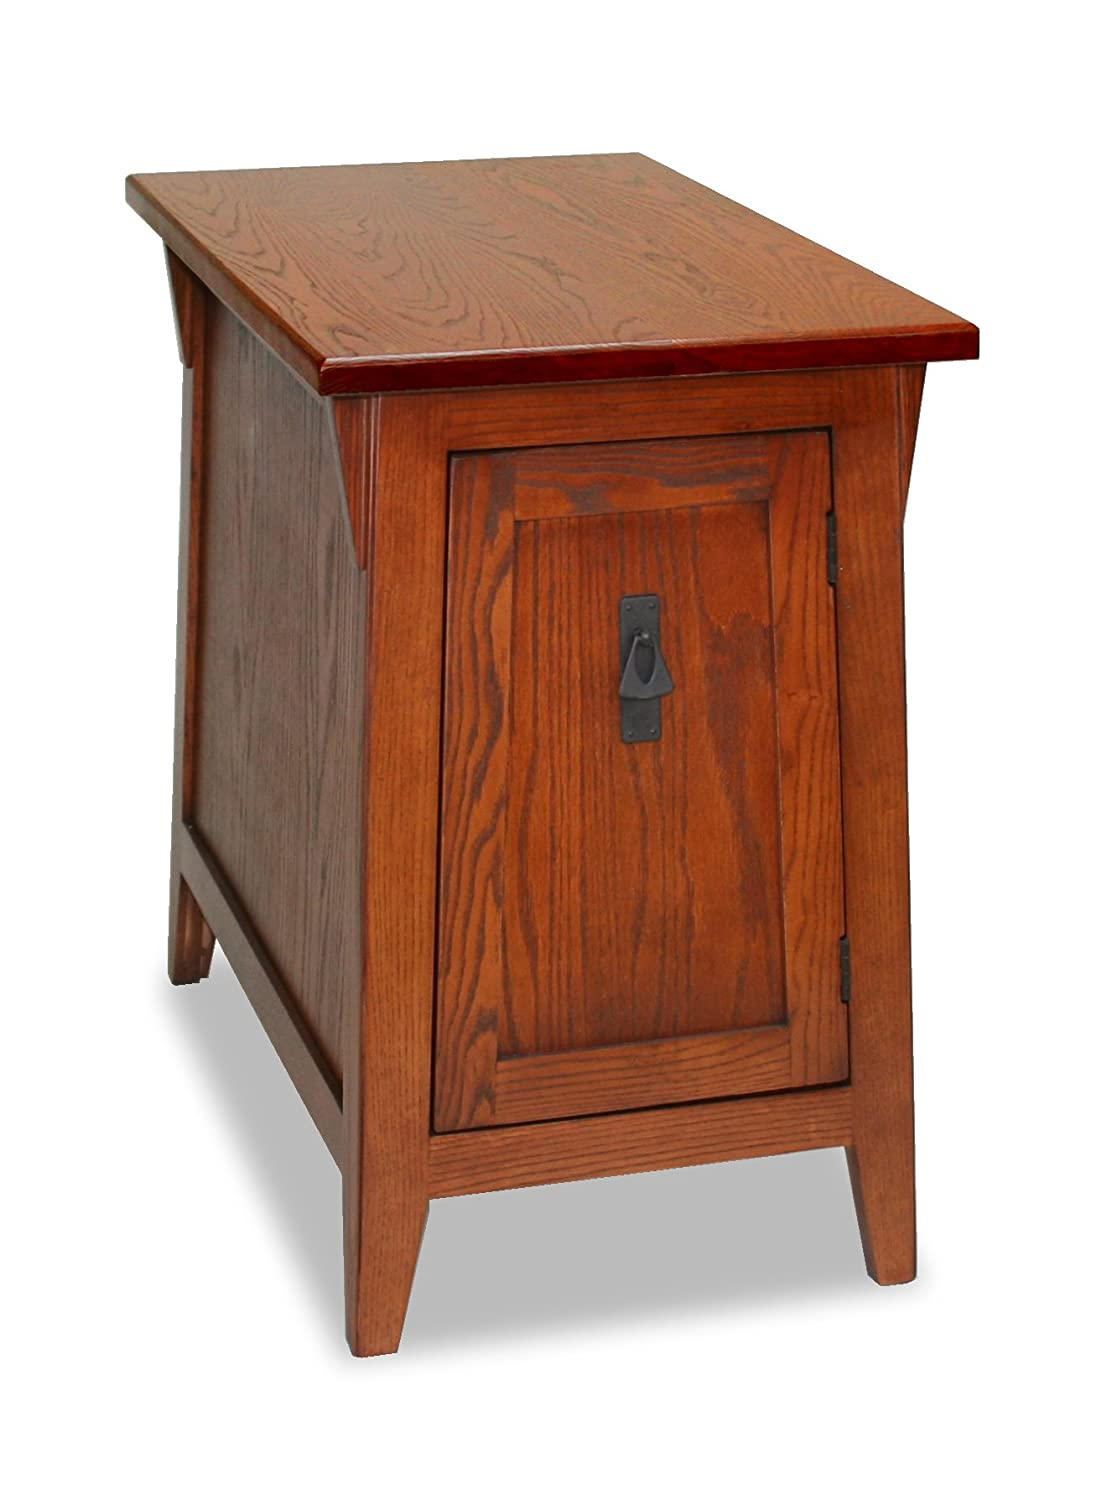 Amazon.com: Leick Favorite Finds Mission Cabinet End Table, Russet ...